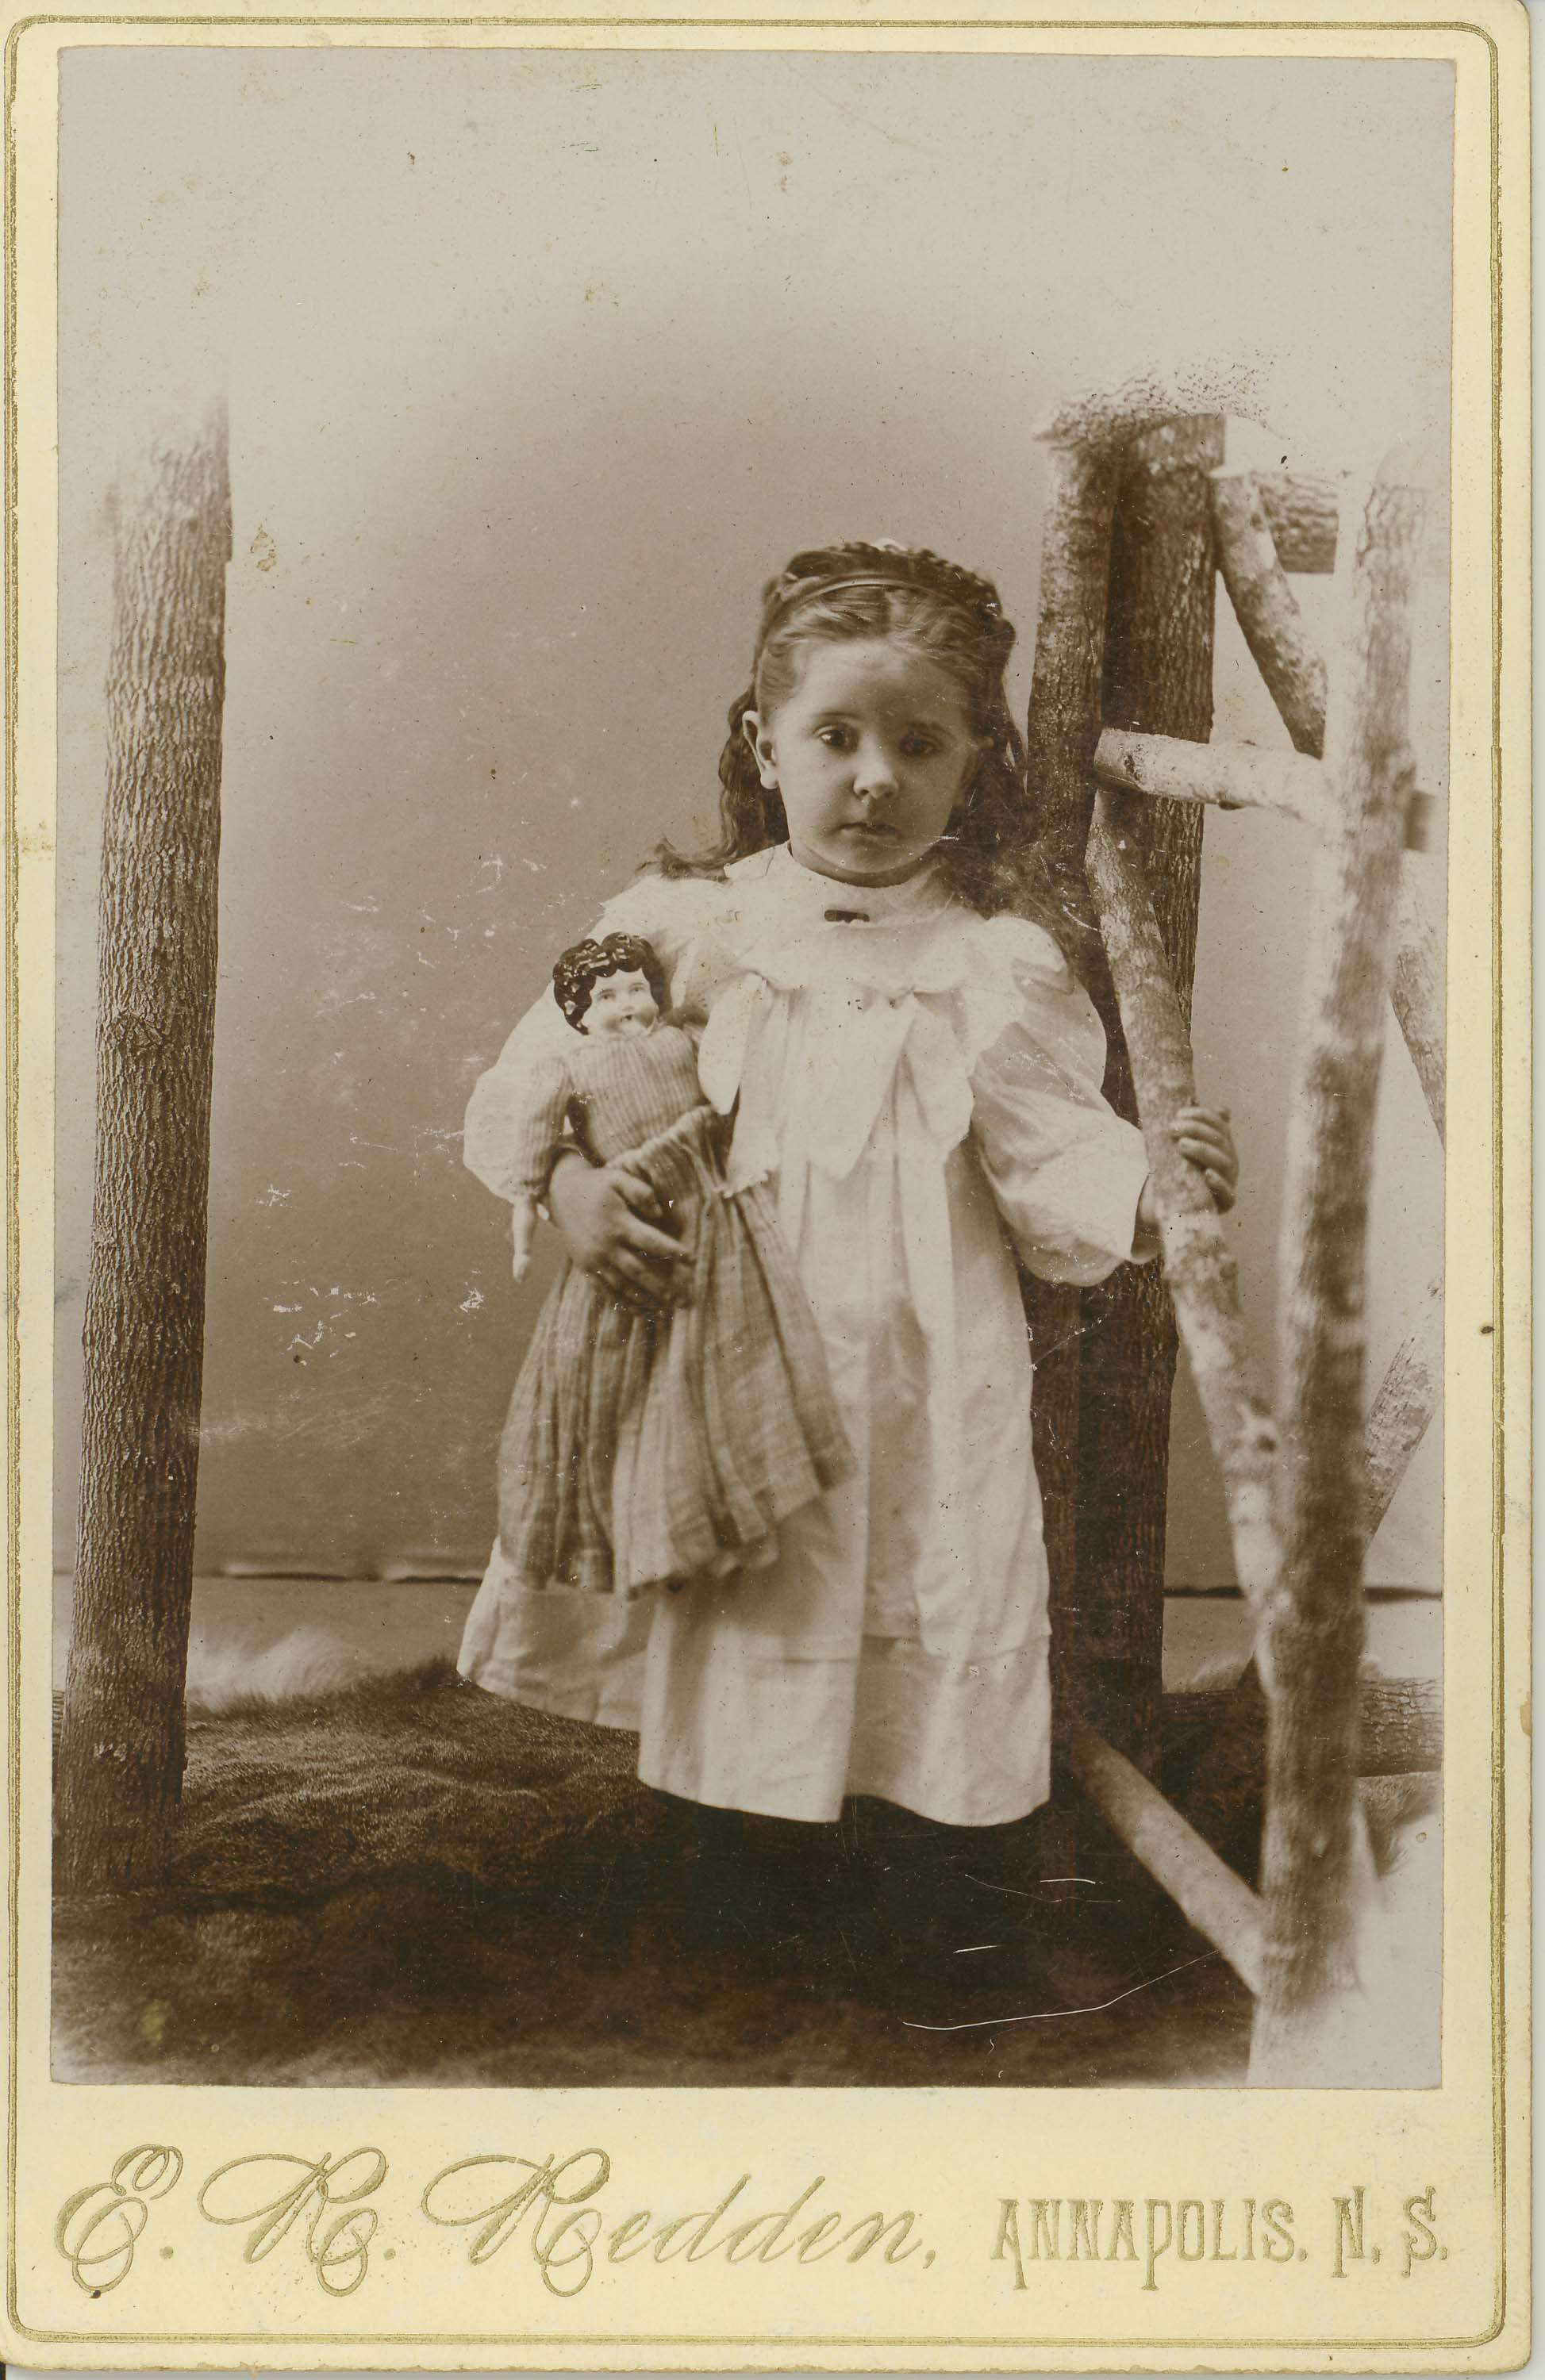 Photo-10-Girl-with-doll-E-R-Redden-Annapolis-NS